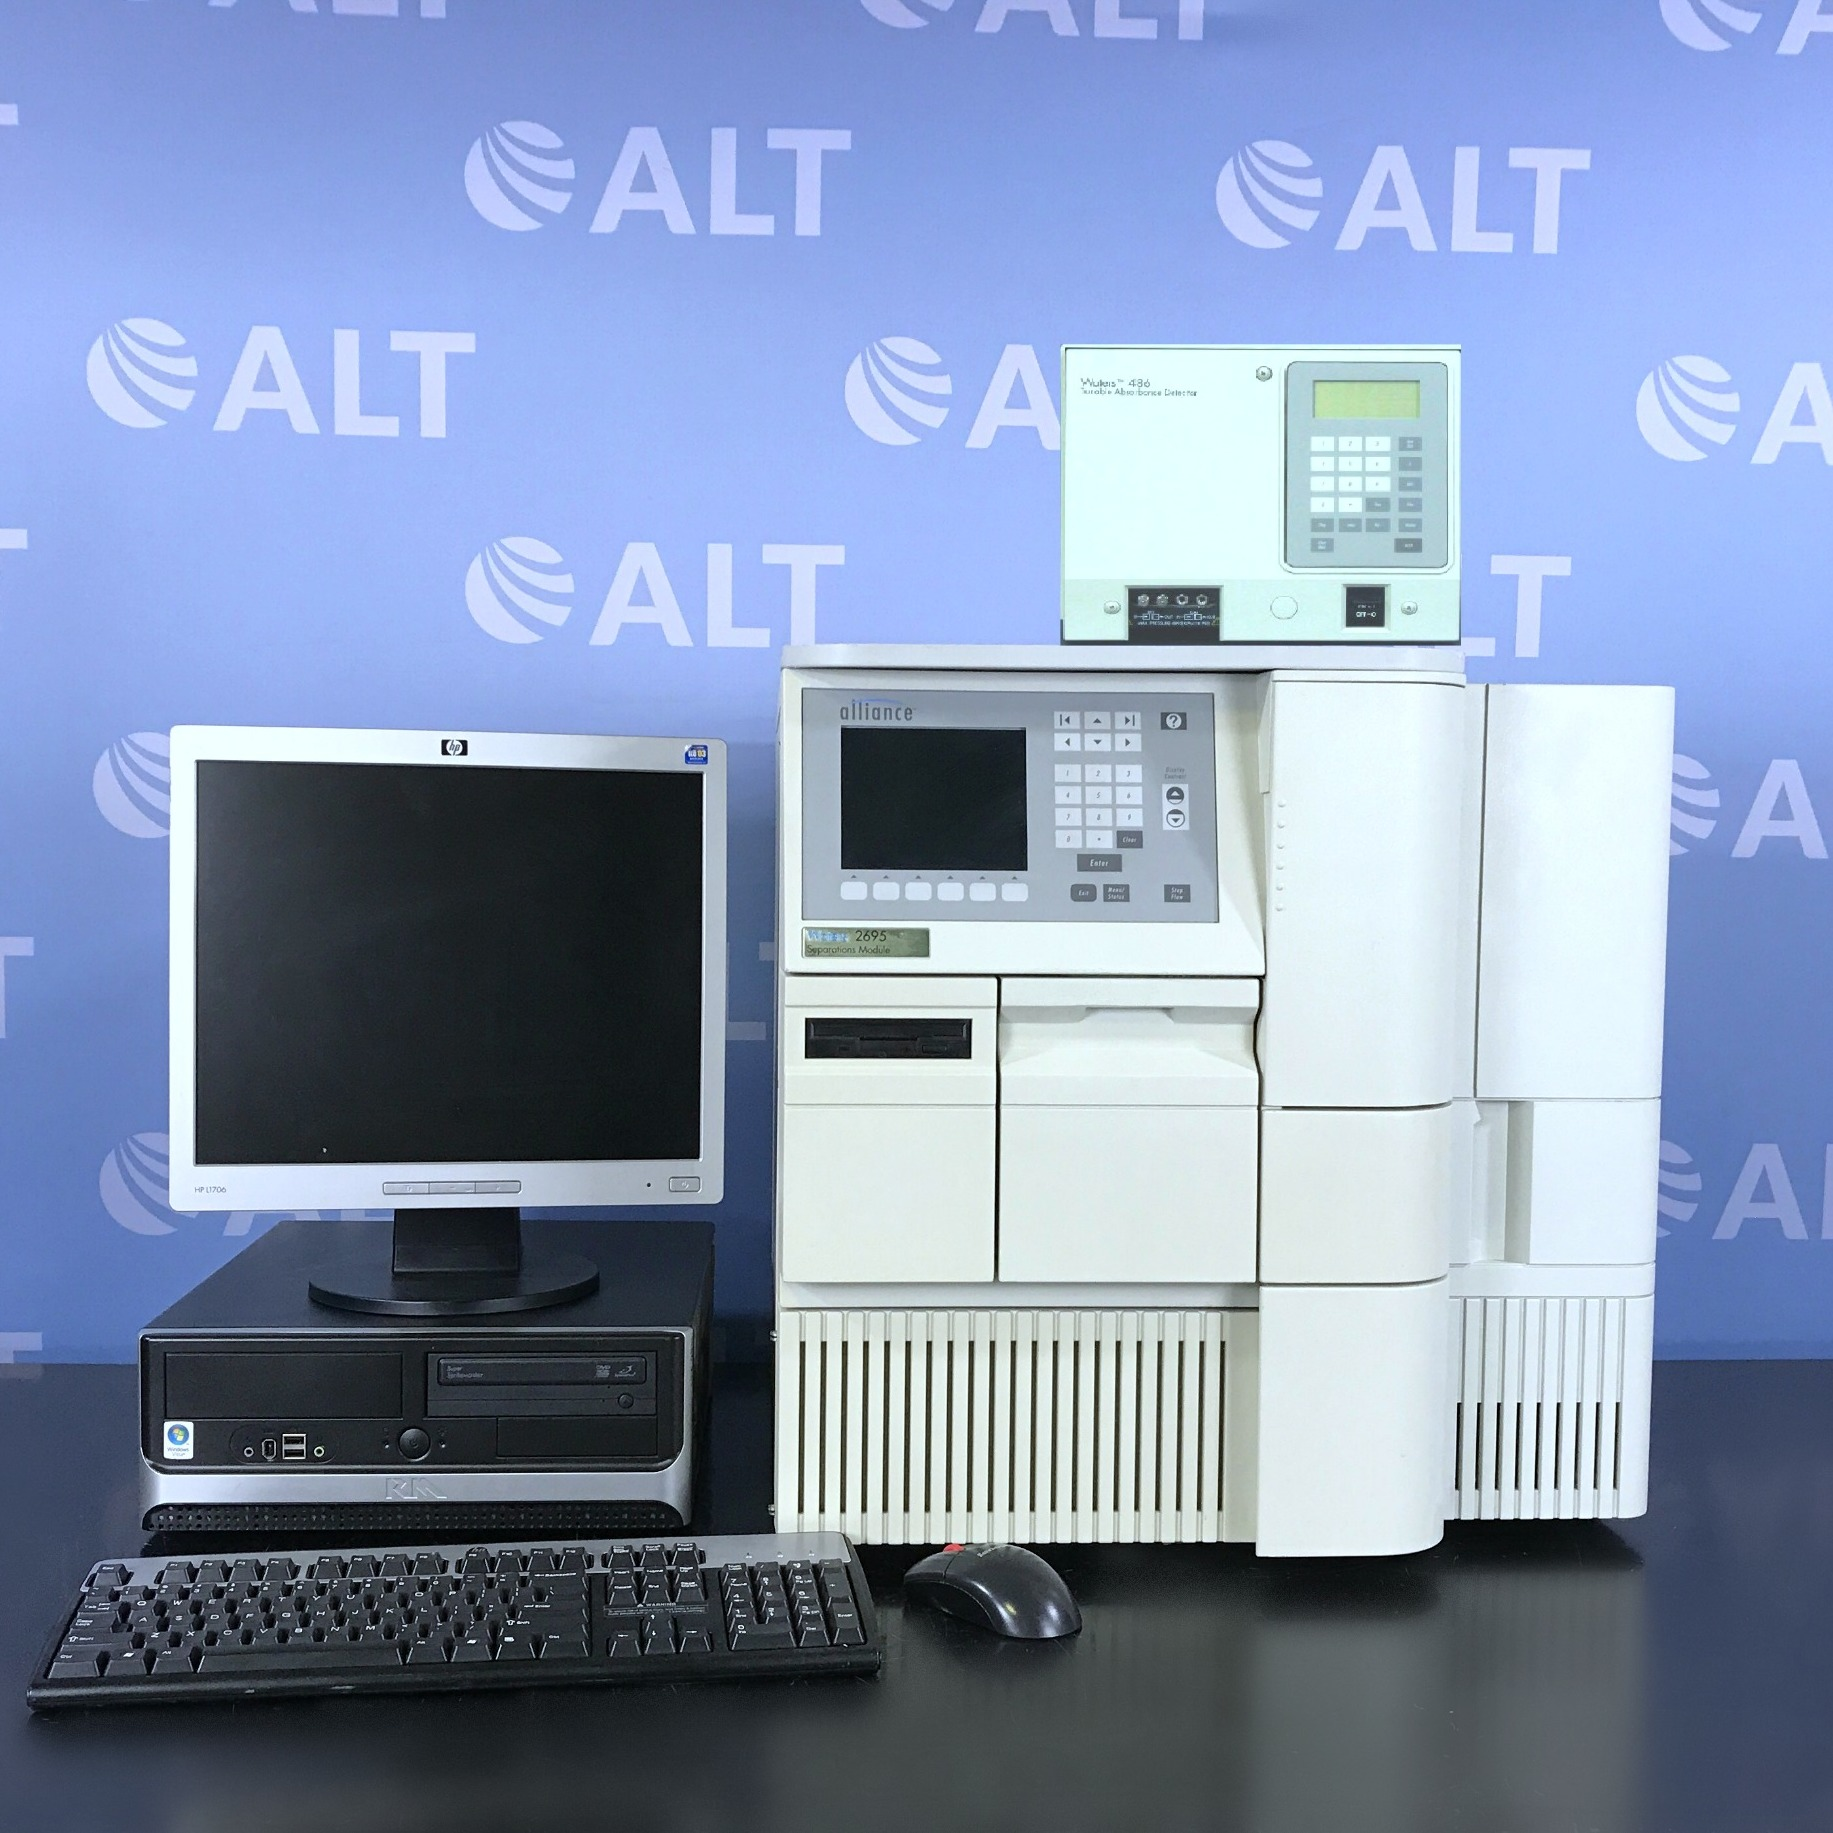 Alliance 2695 HPLC with 486 Tunable Absorbance Detector Name